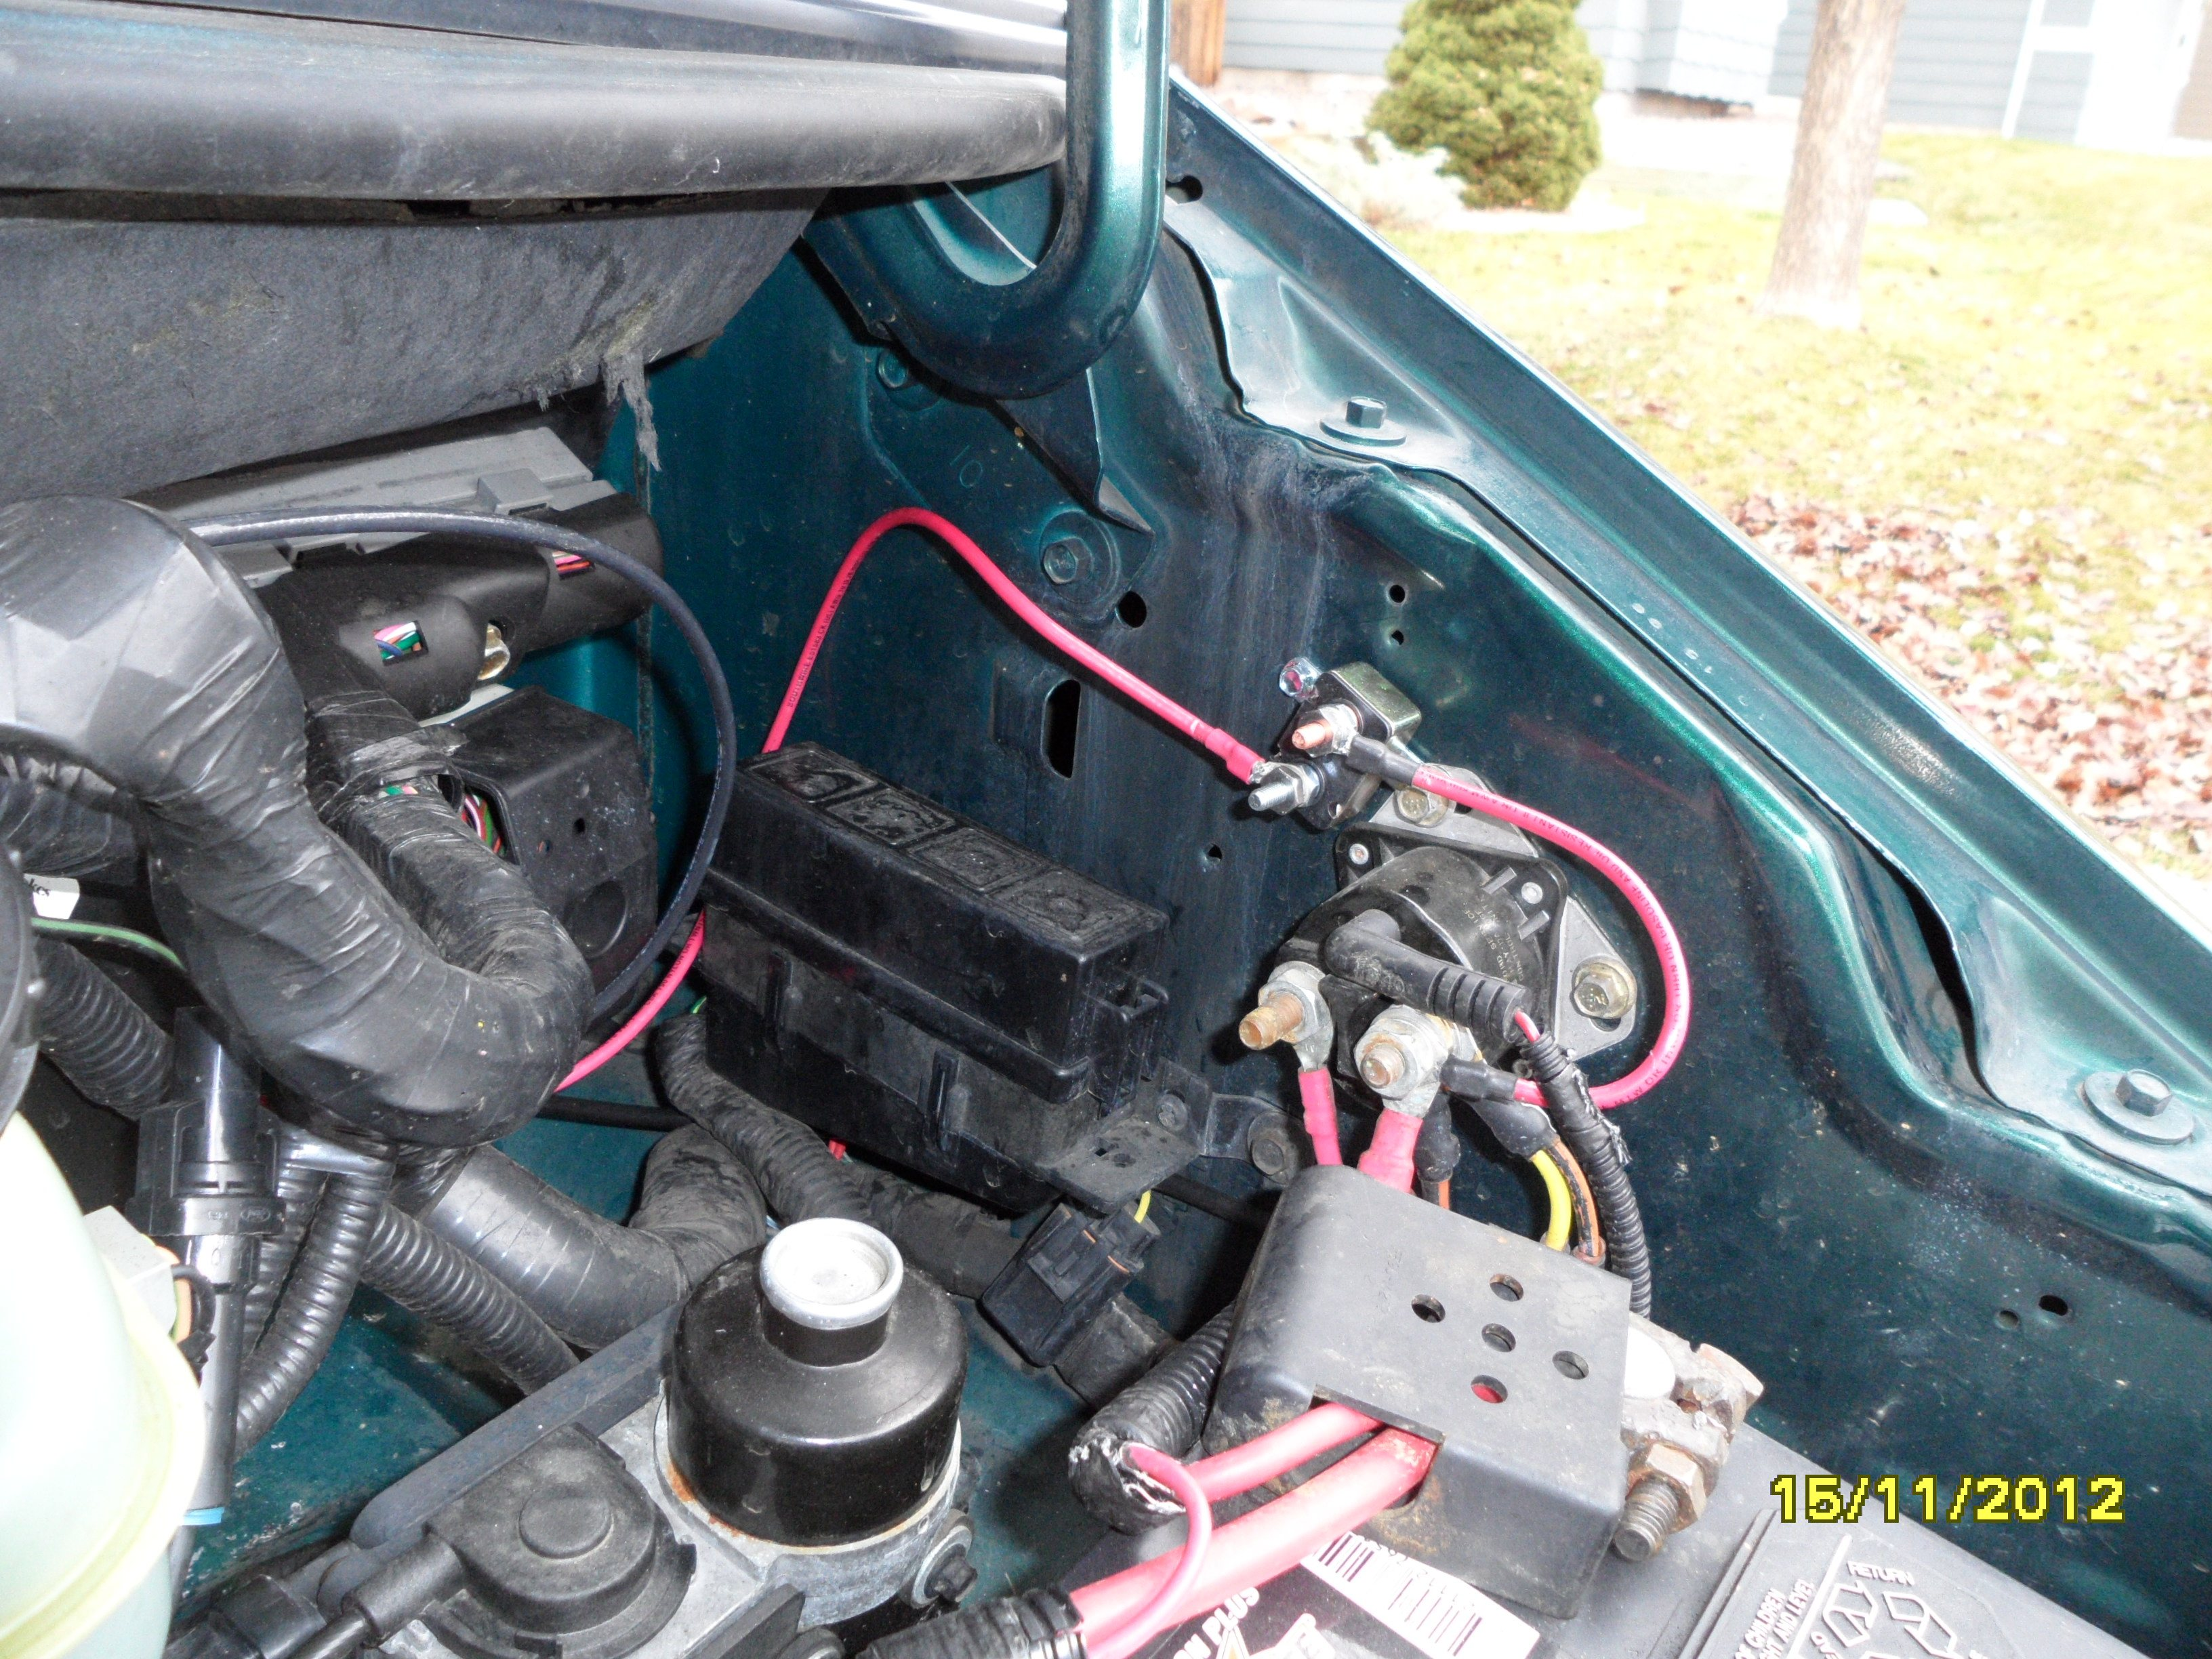 Ford Aerostar Wiring Library 92 Ranger Engine Diagram 93 F150 Under Hood Relay Location Get Free Image About 1994 Starting